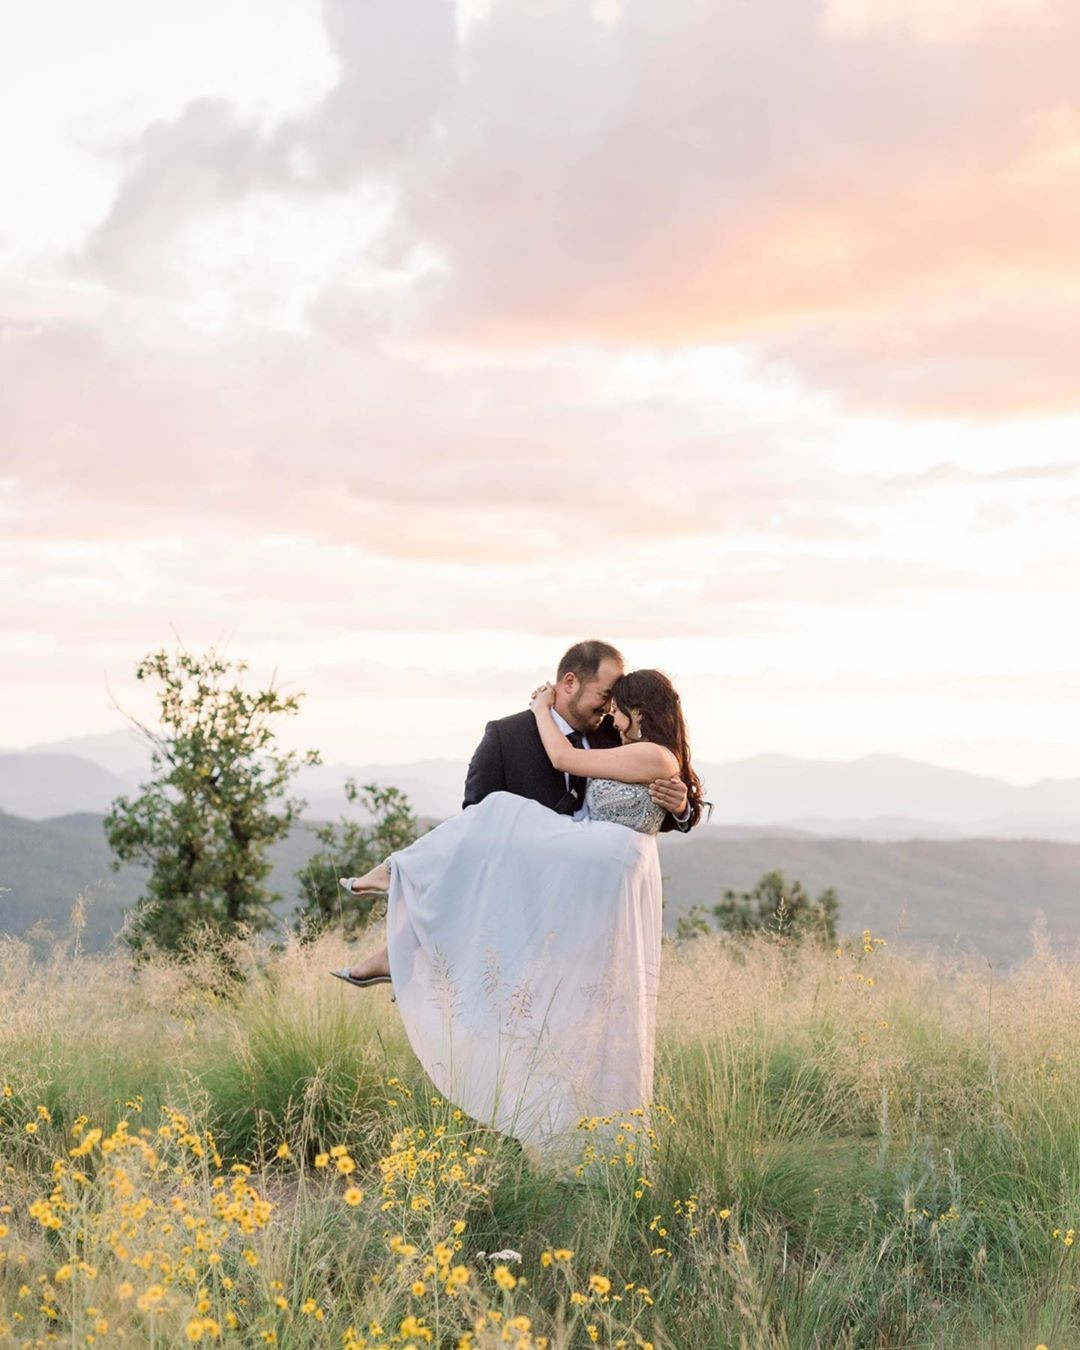 Wowowowow these colors!! Vanessa + Michael, the very best for letting me go on and on and on with these sunset photos 😍😍😍